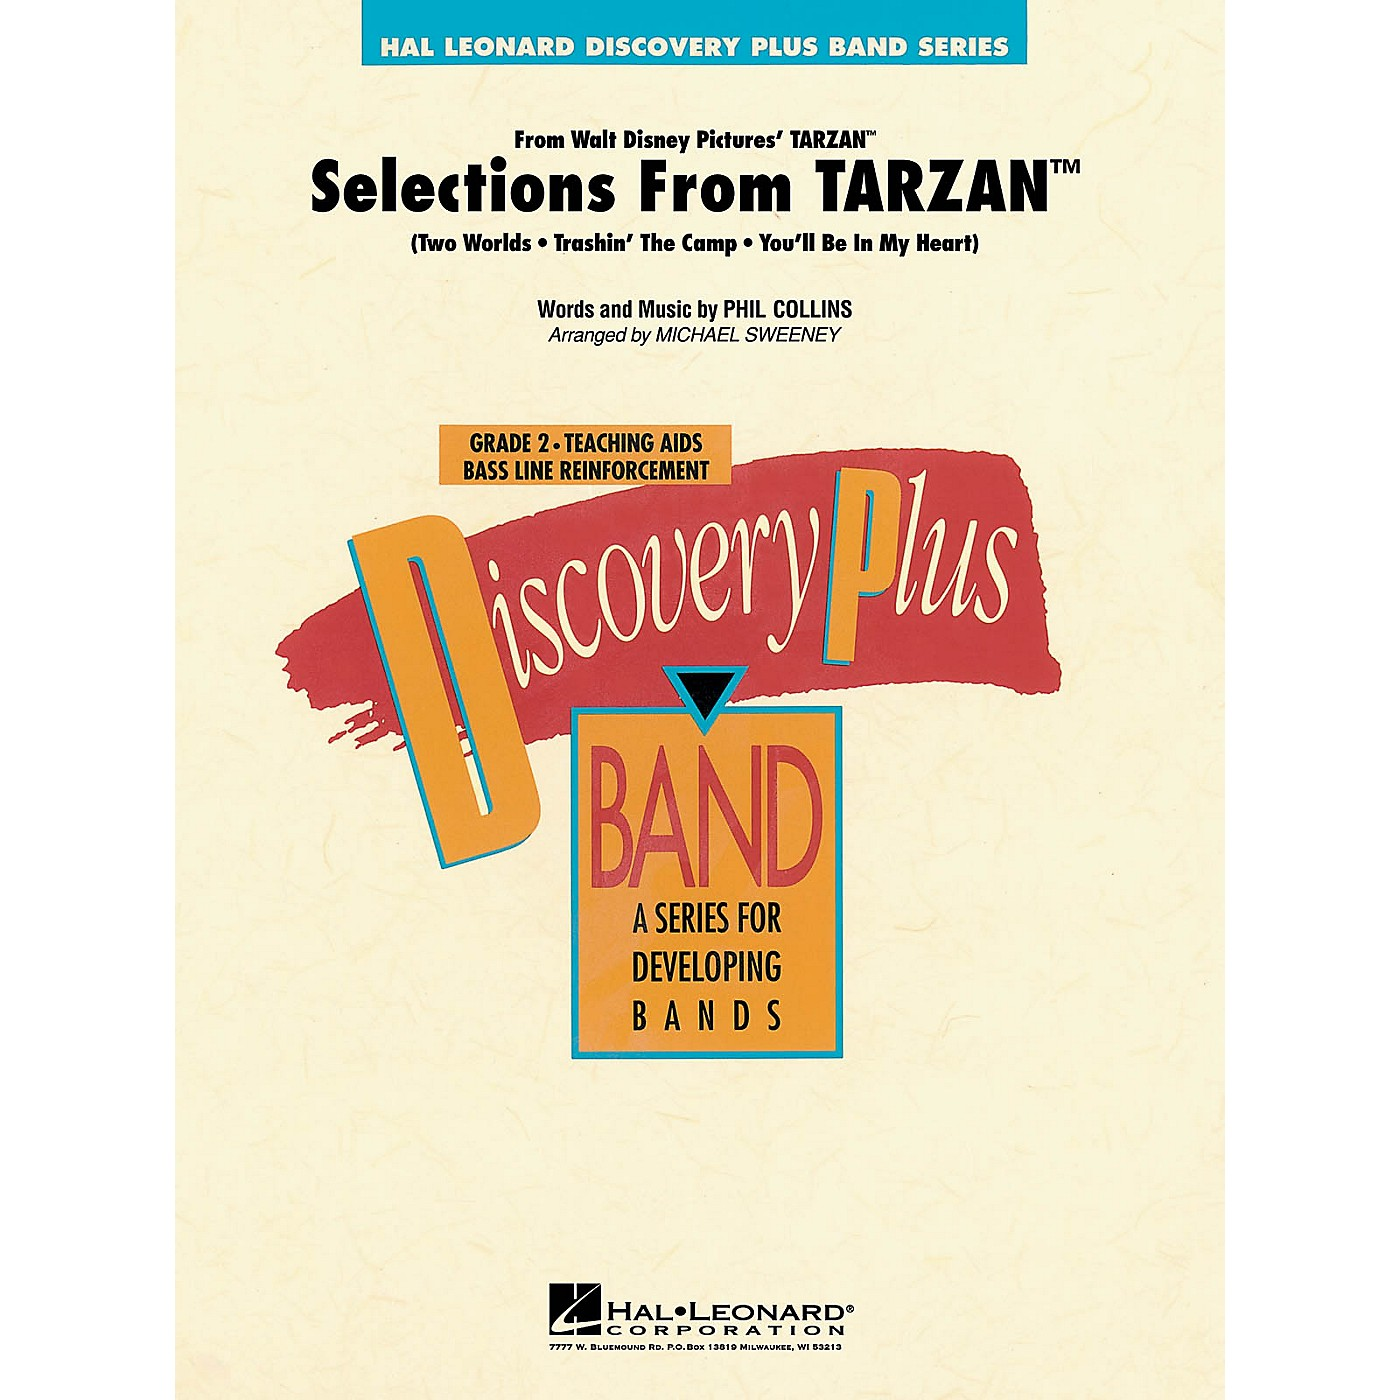 Hal Leonard Selections from Tarzan - Discovery Plus Concert Band Series Level 2 arranged by Michael Sweeney thumbnail